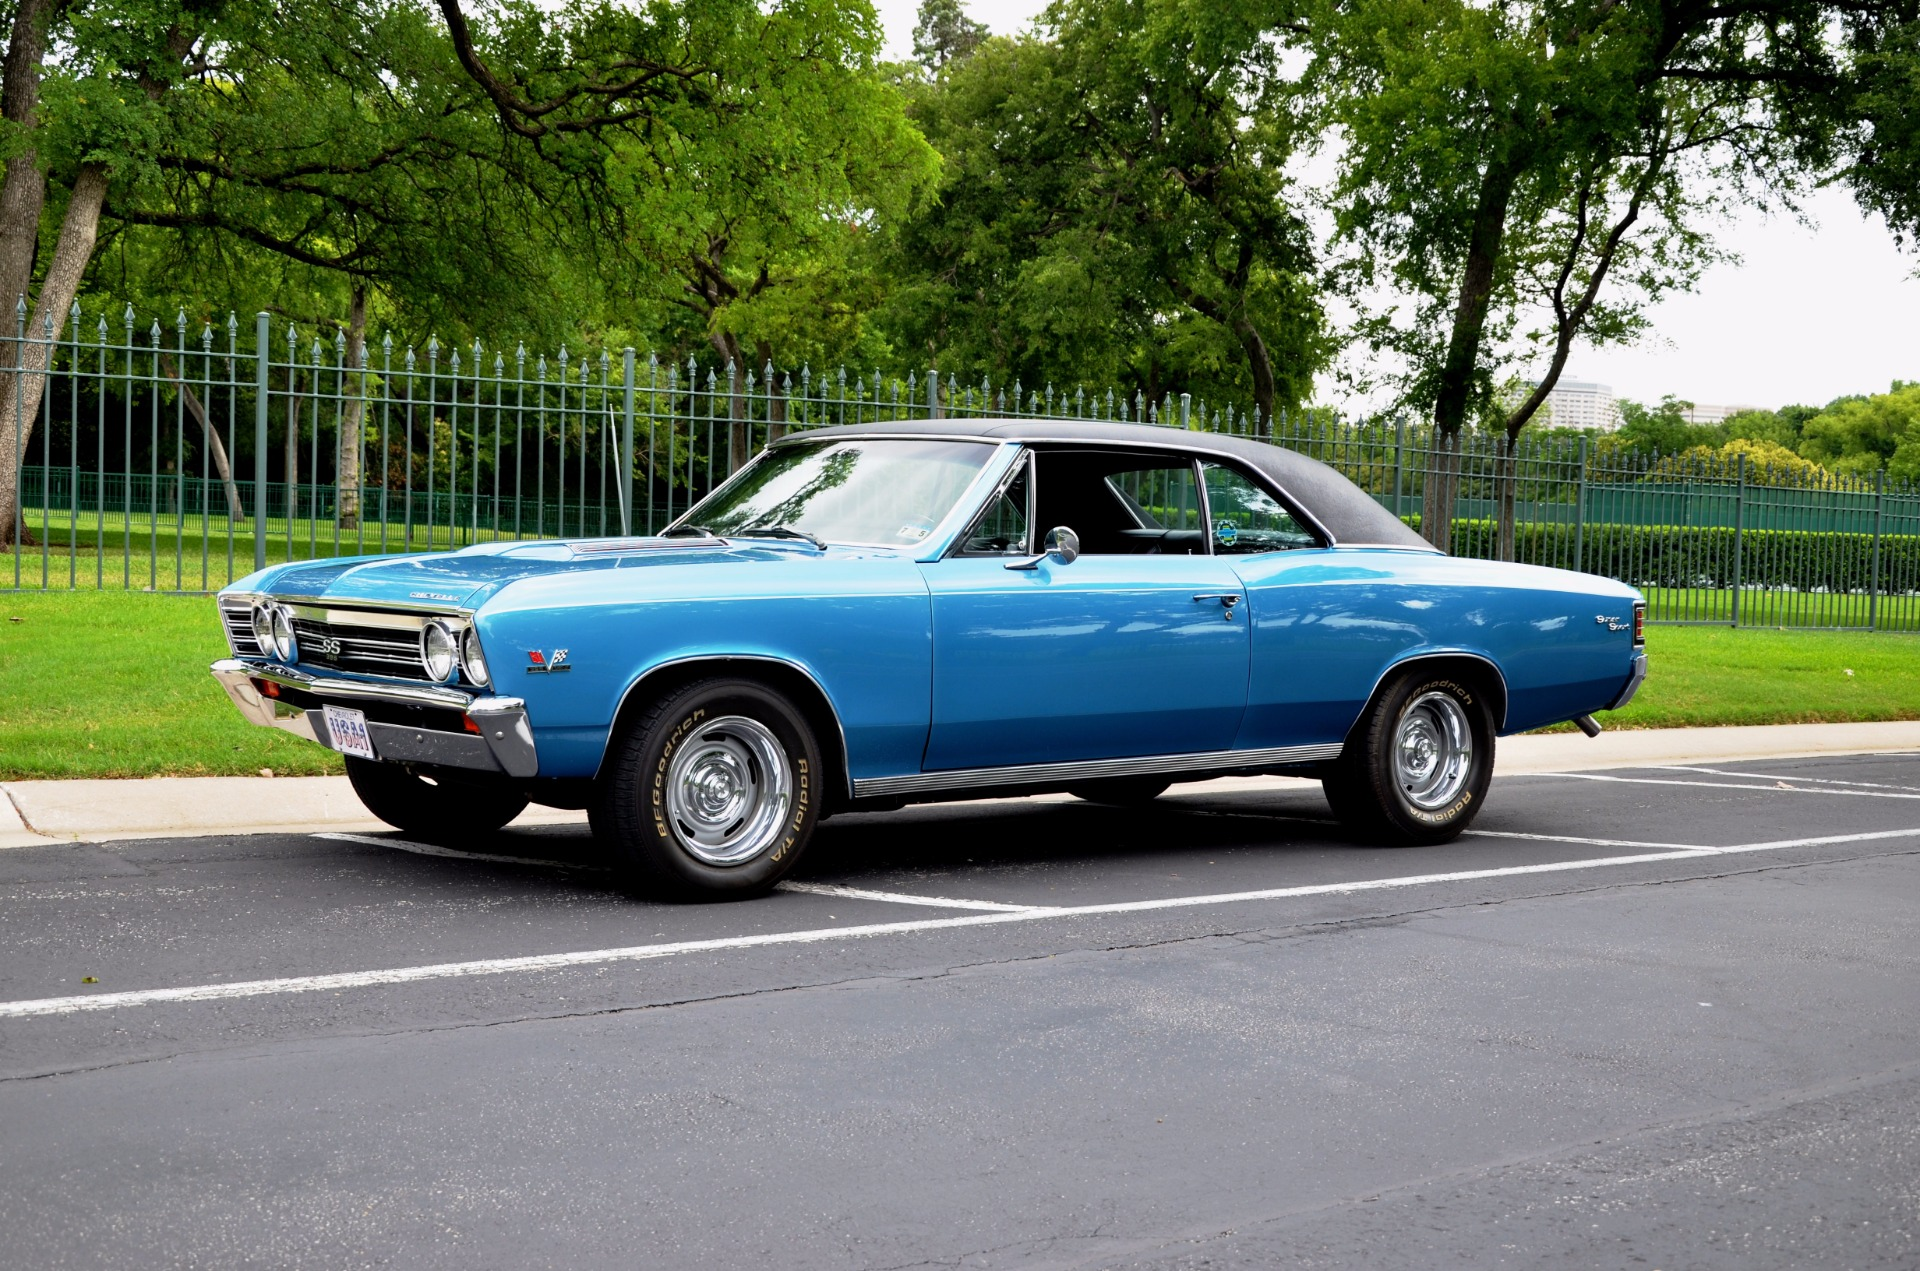 1967 CHEVROLET CHEVELLE SUPER SPORT Stock # 67CHEVE for sale near ...